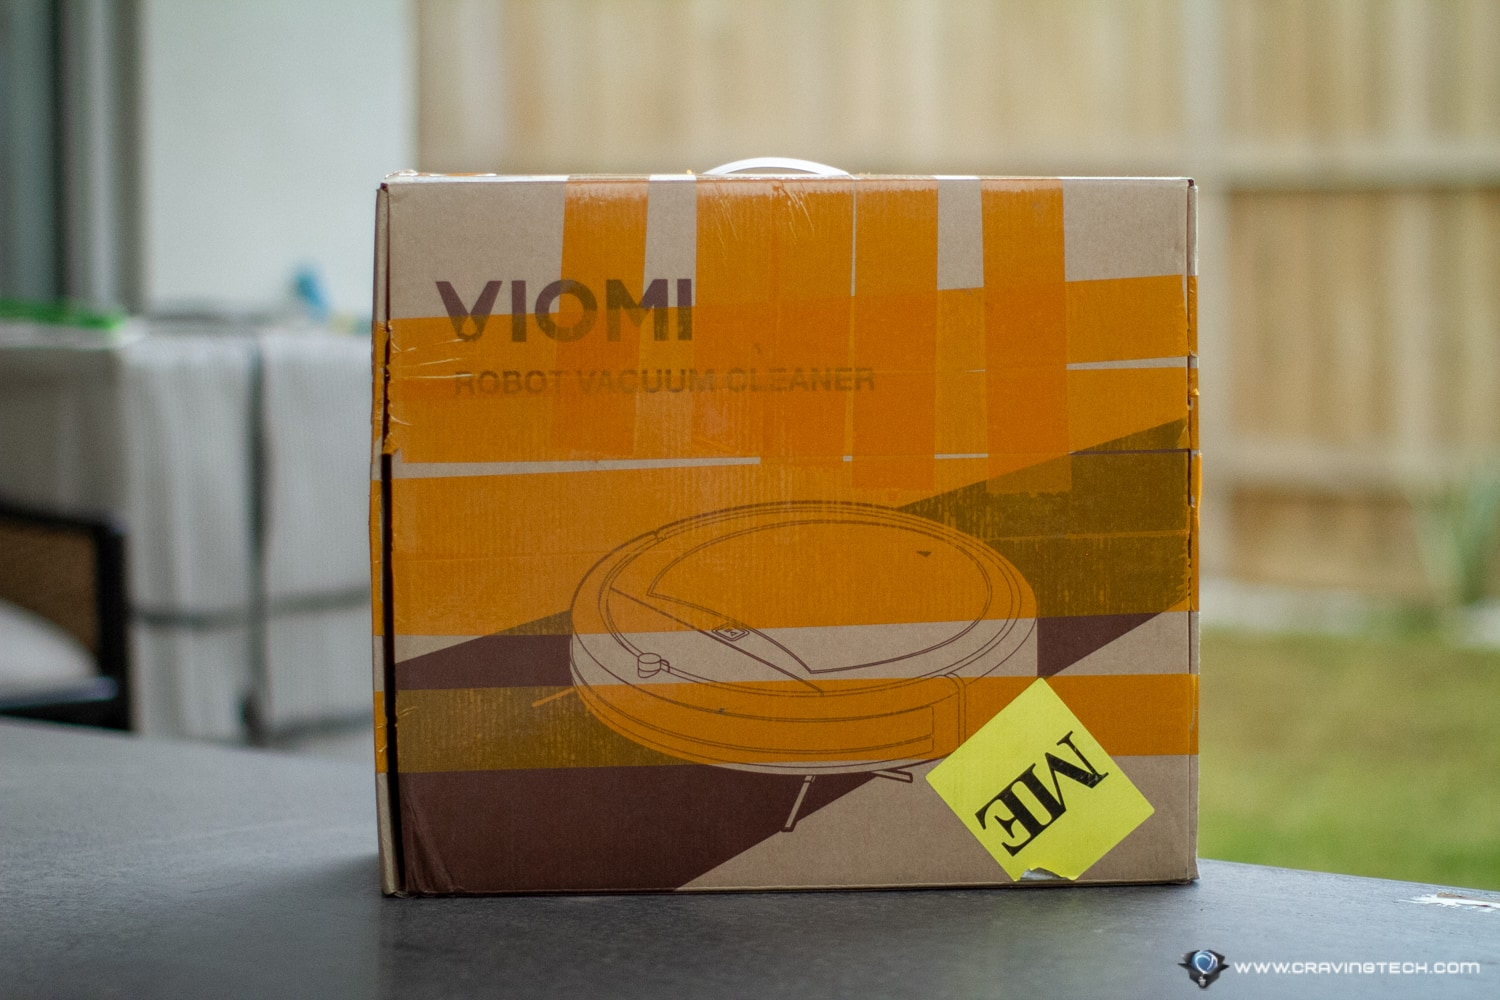 Xiaomi Viomi 3 Packaging